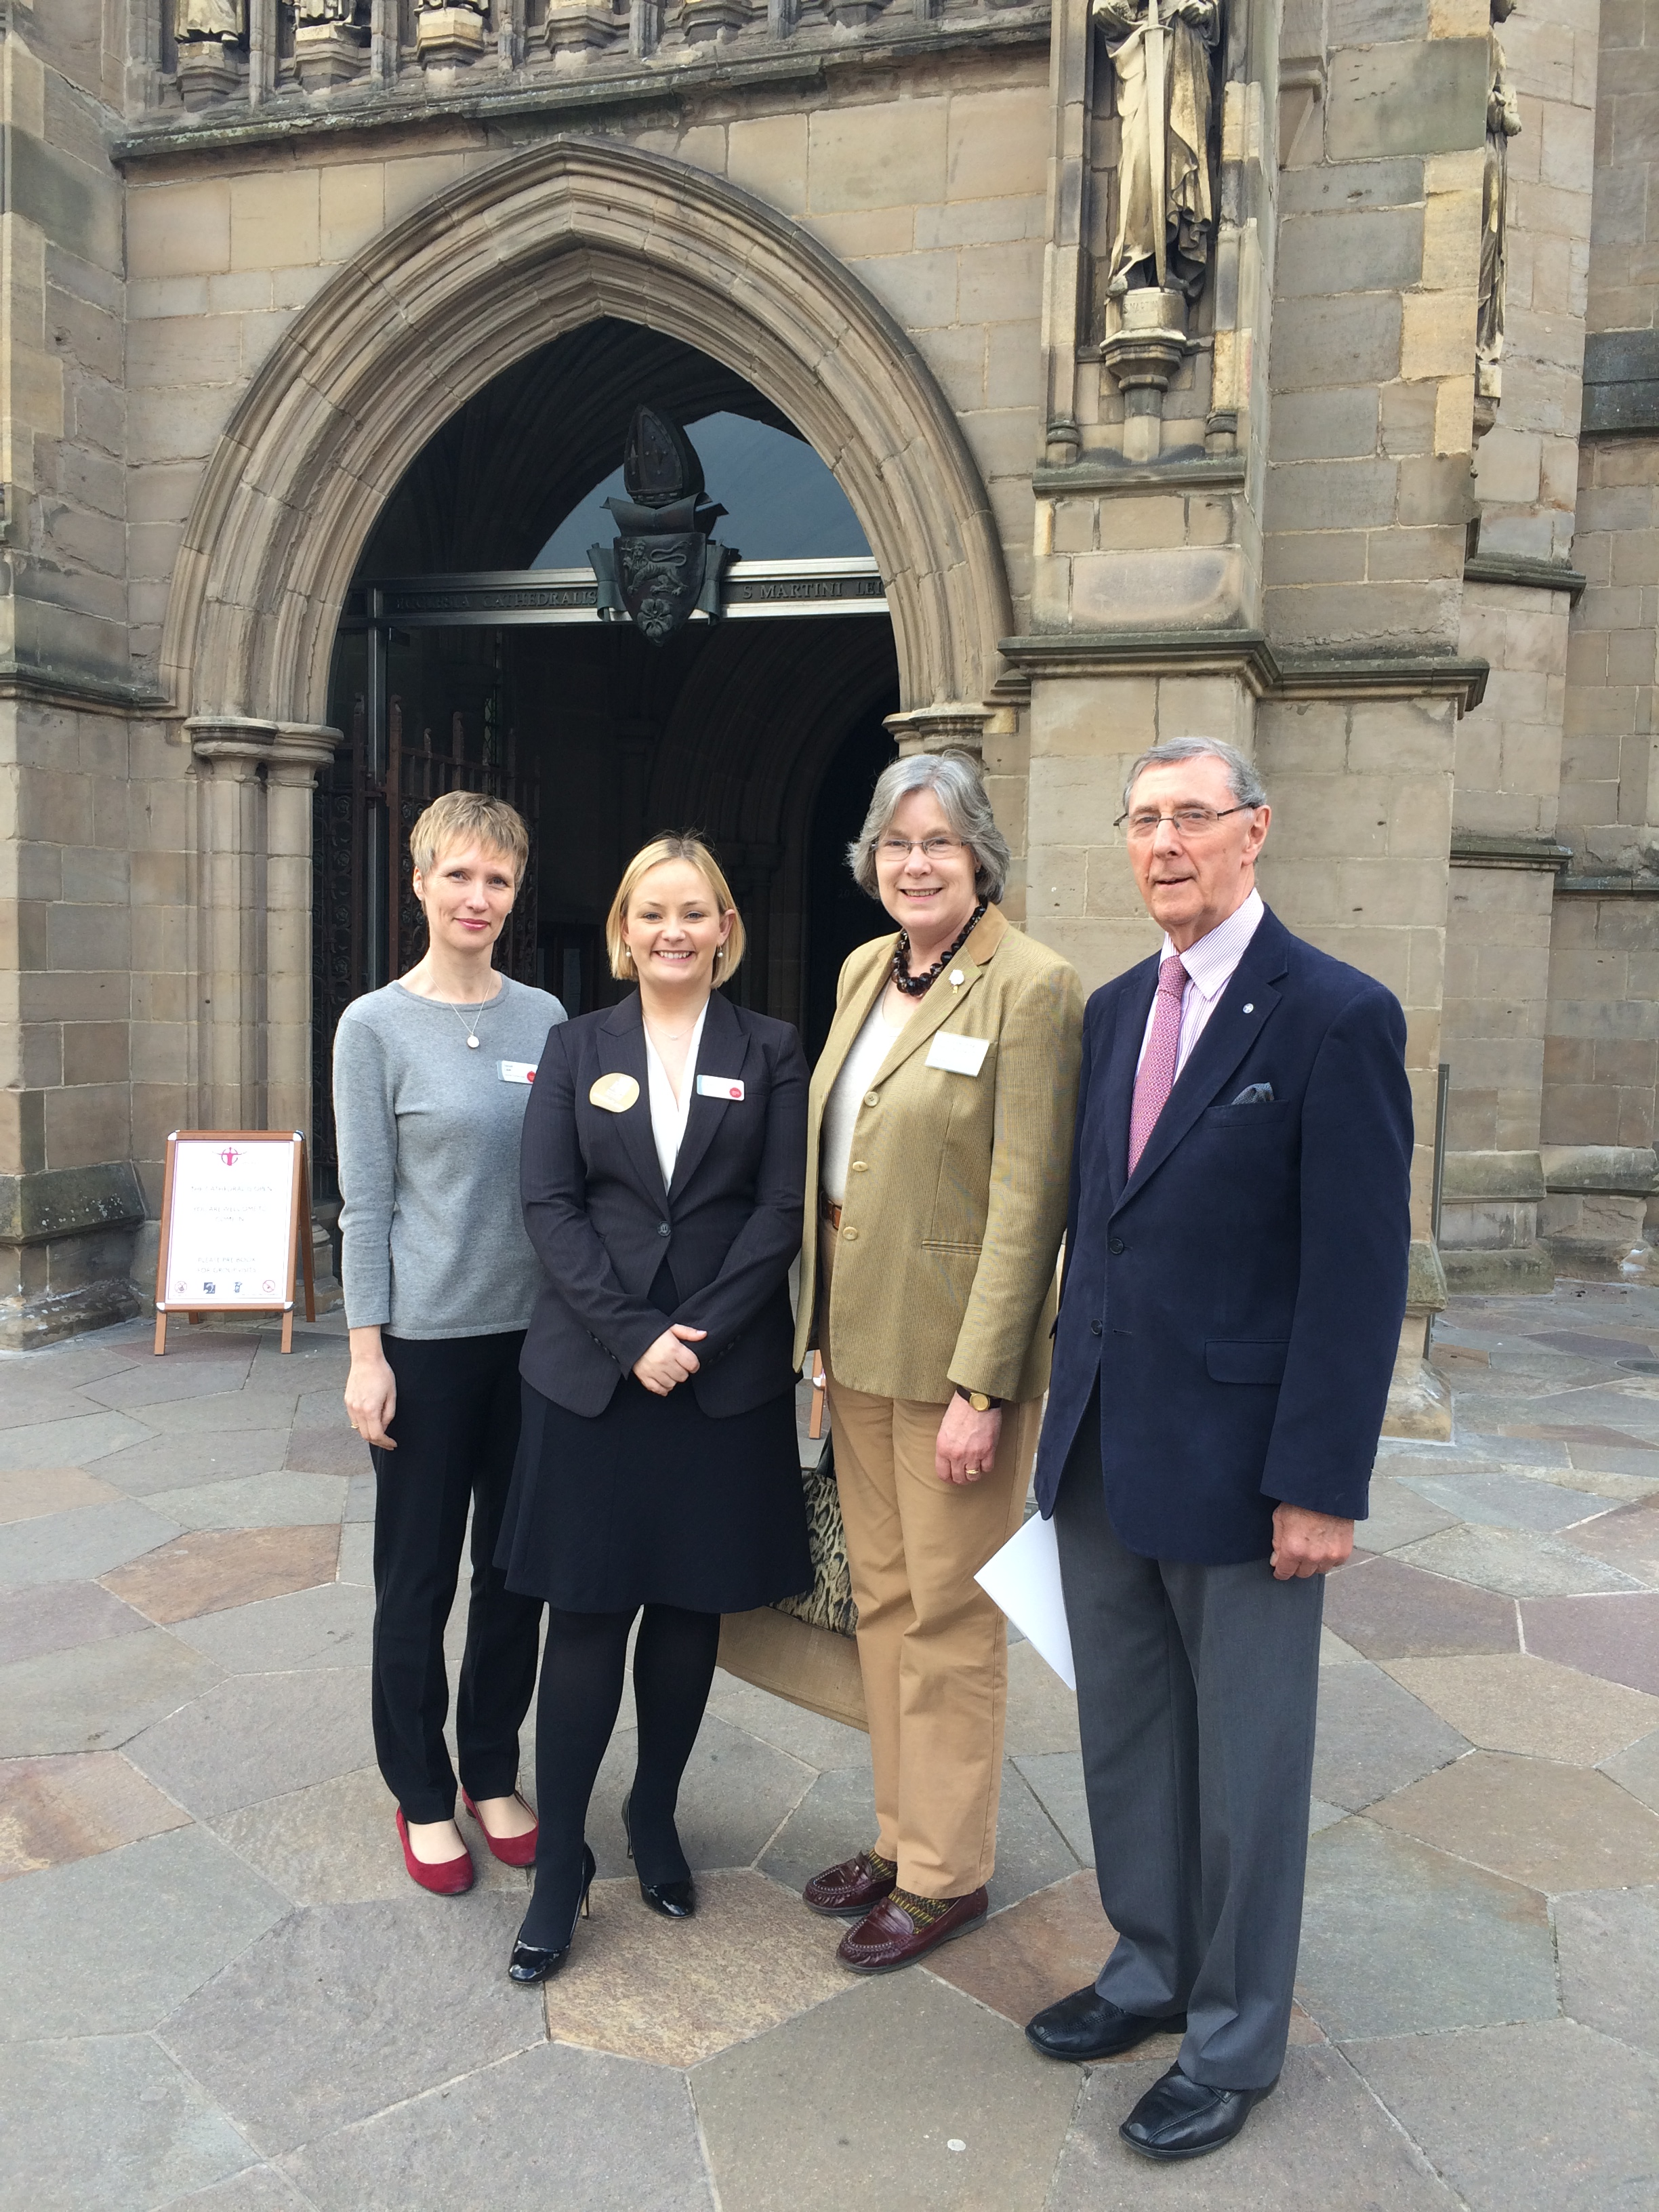 Janet Law and Emily Beahan (National Churches Trust) with Janet Arthur and David Knowles (Leicestershire Historic Churches Trust)